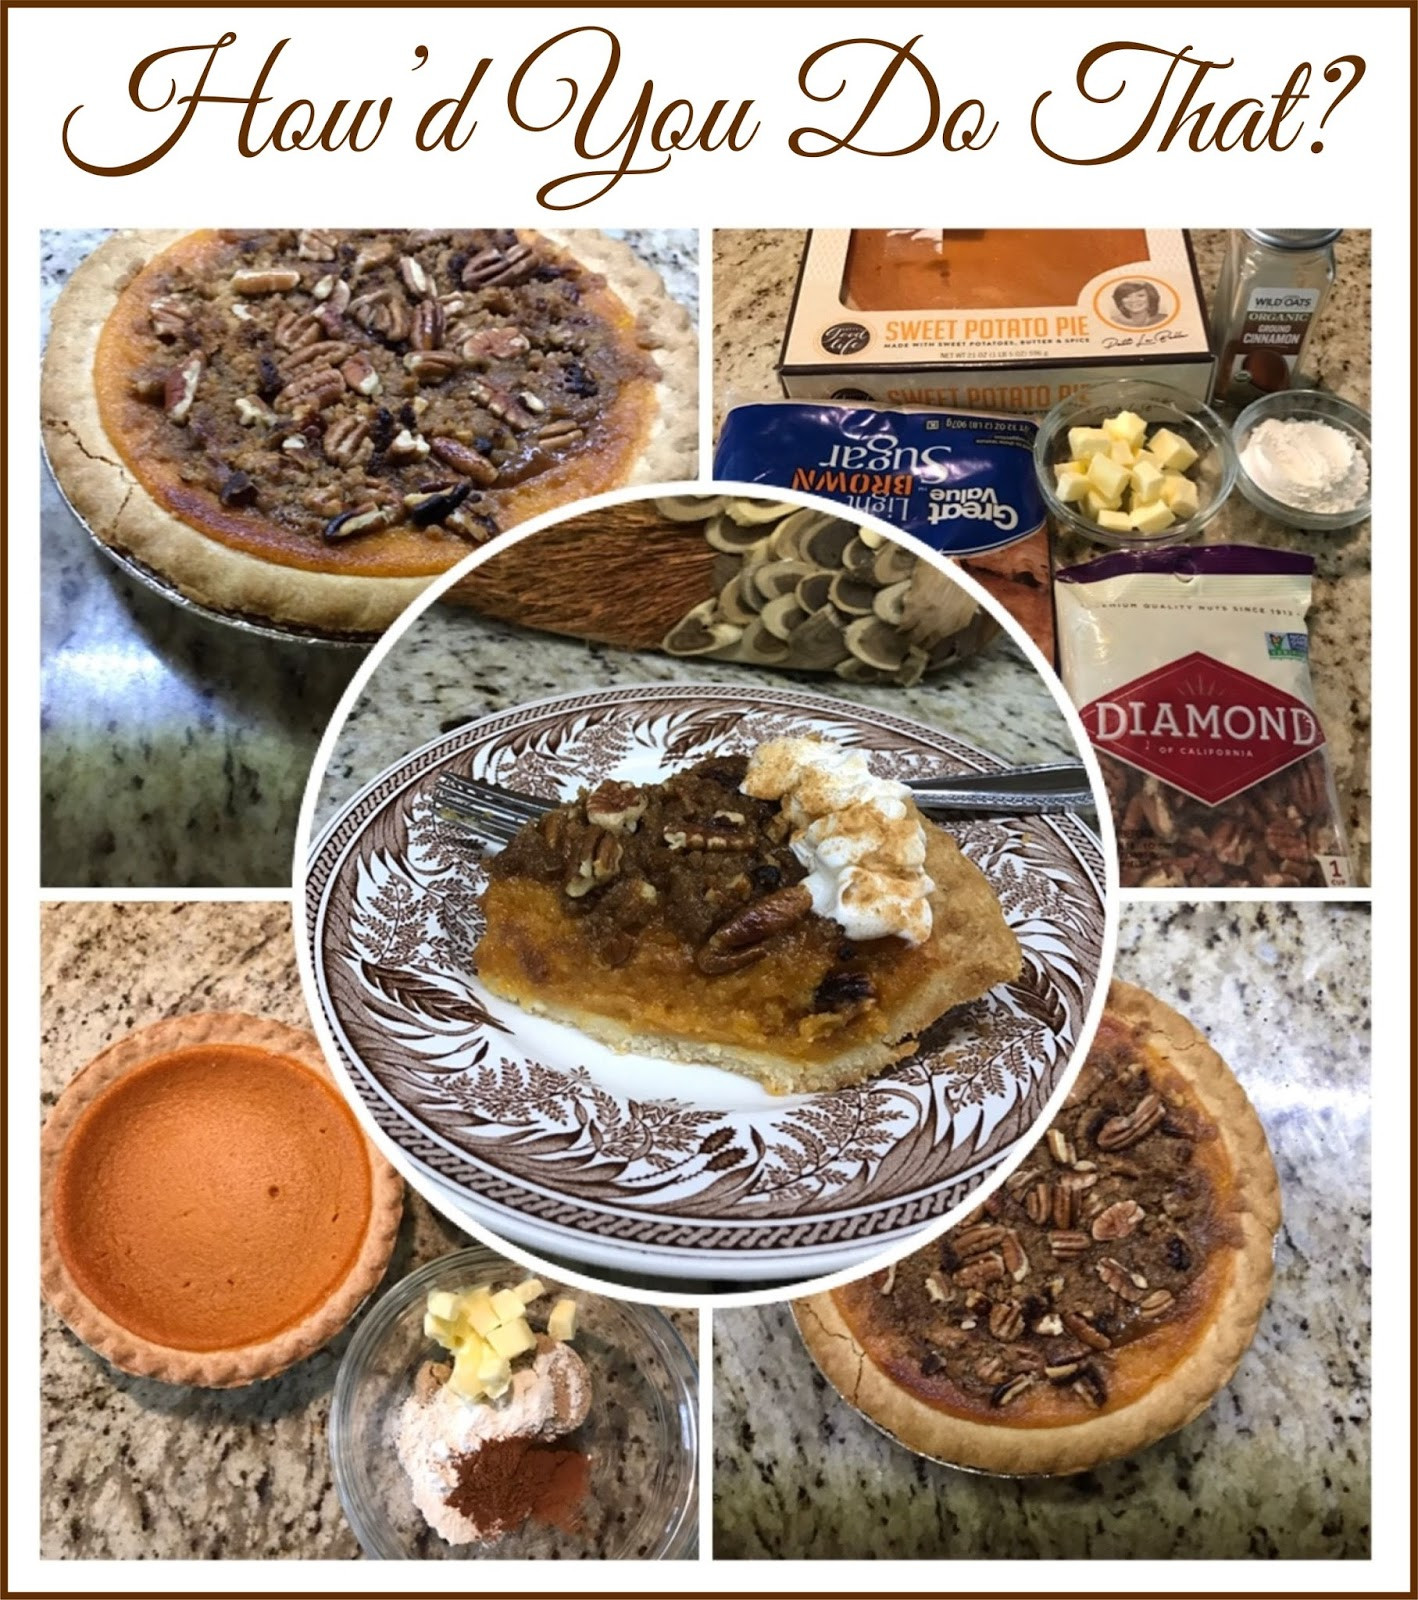 How To Store Pumpkin Pie  How d You Do That PUMPKIN PIE HOW TO ENHANCE A STORE